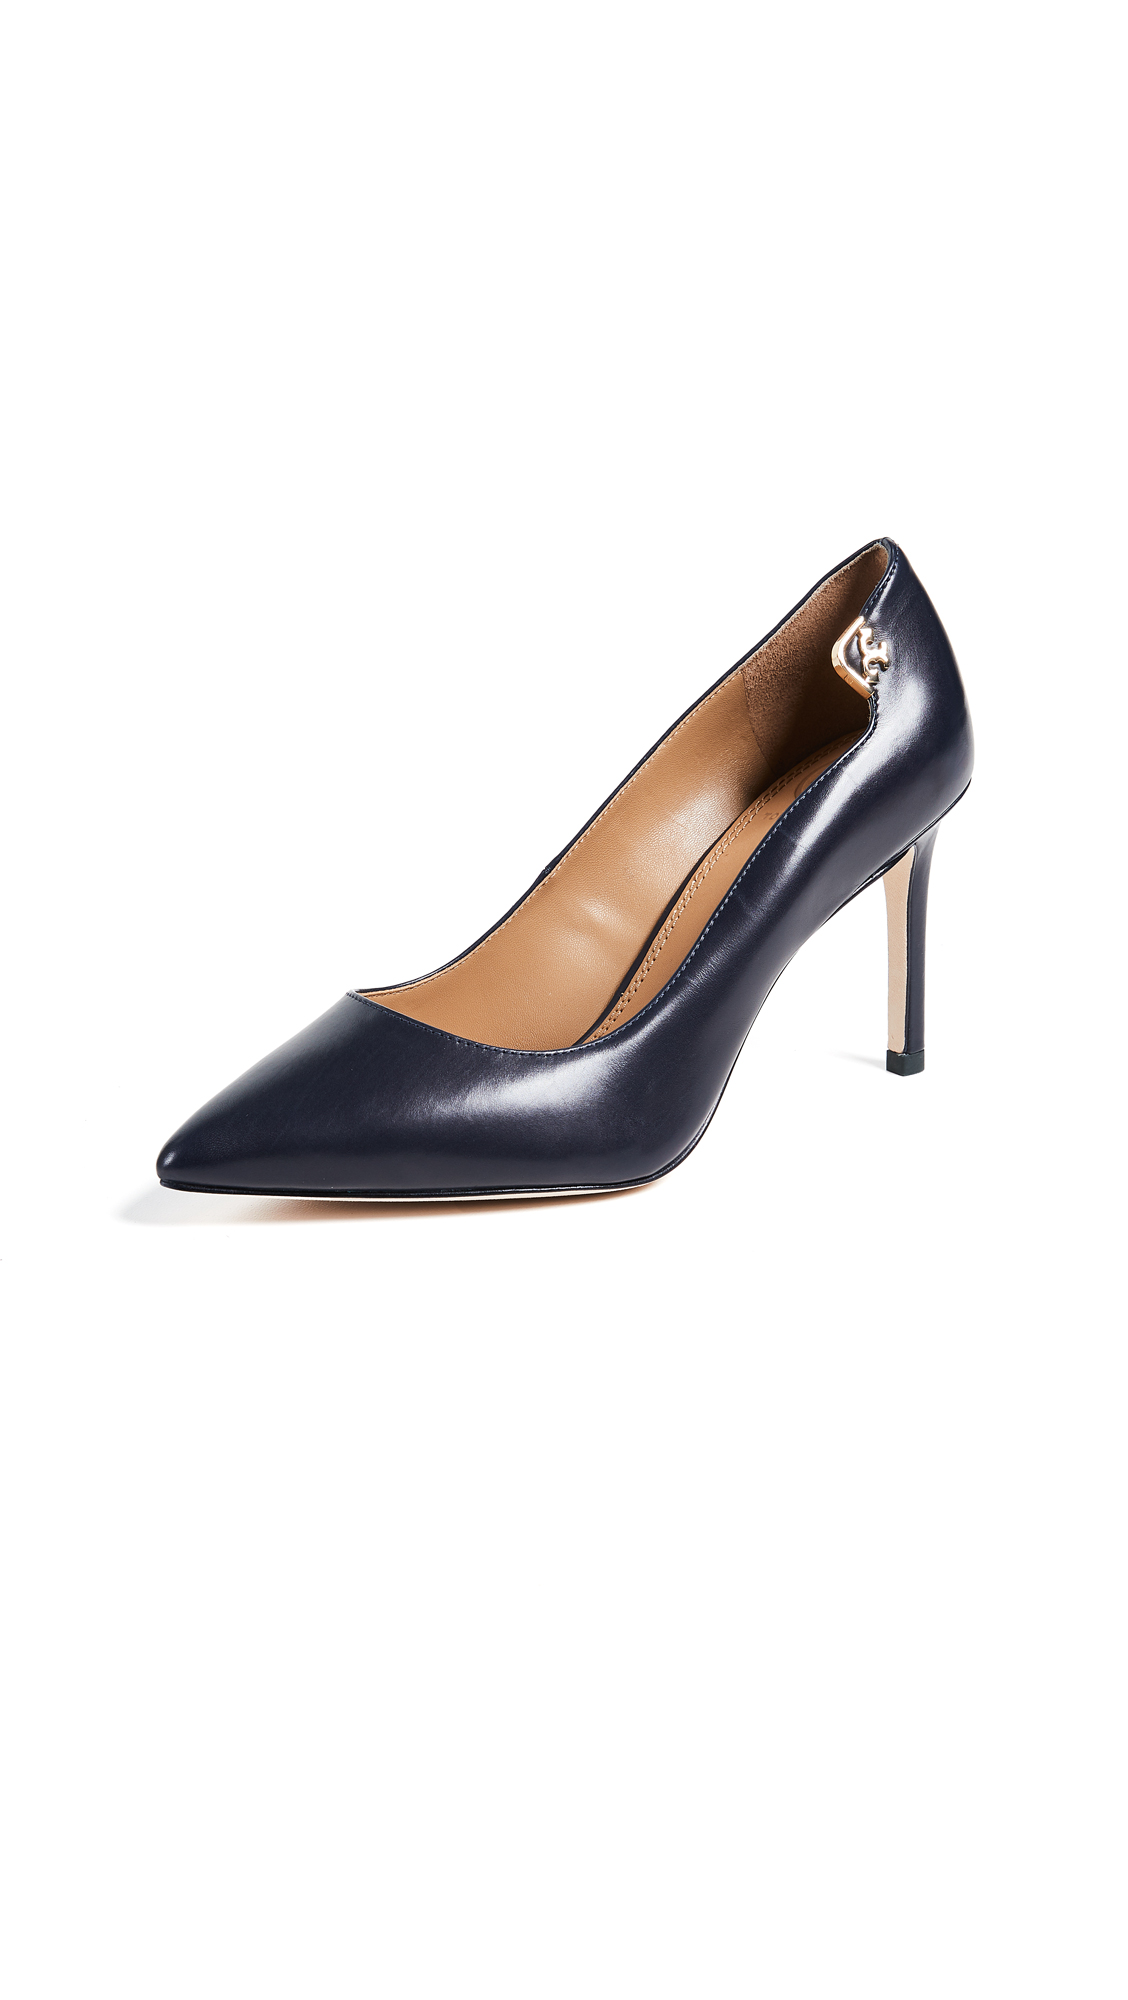 Tory Burch Elizabeth 85mm Pumps - Perfect Navy